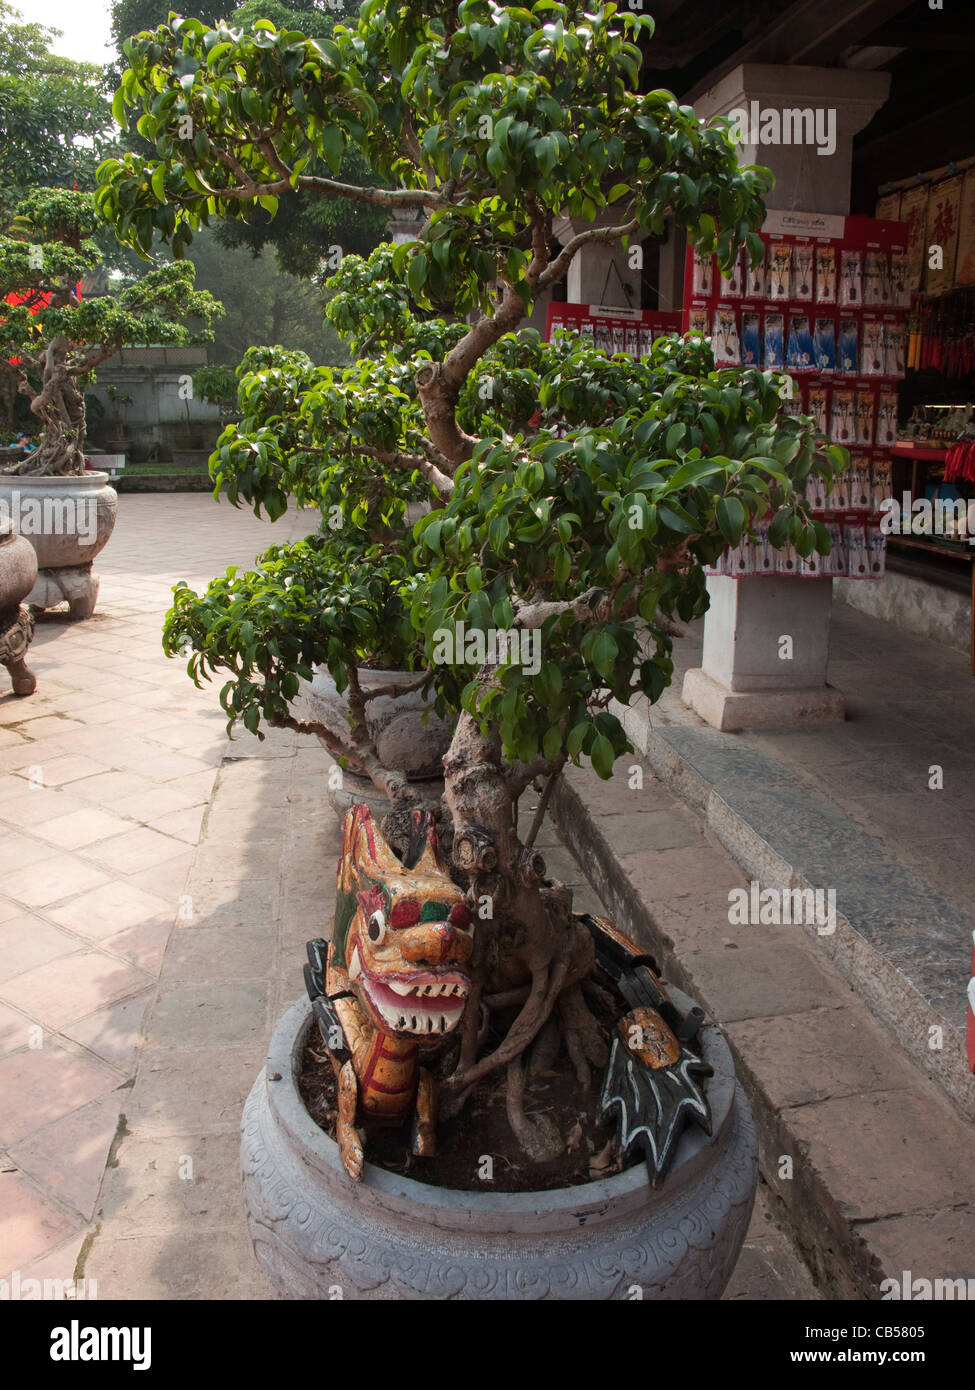 Potted Bonsai Tree At The Temple Of Literature In Hanoi With A Dragon Stock Photo Alamy